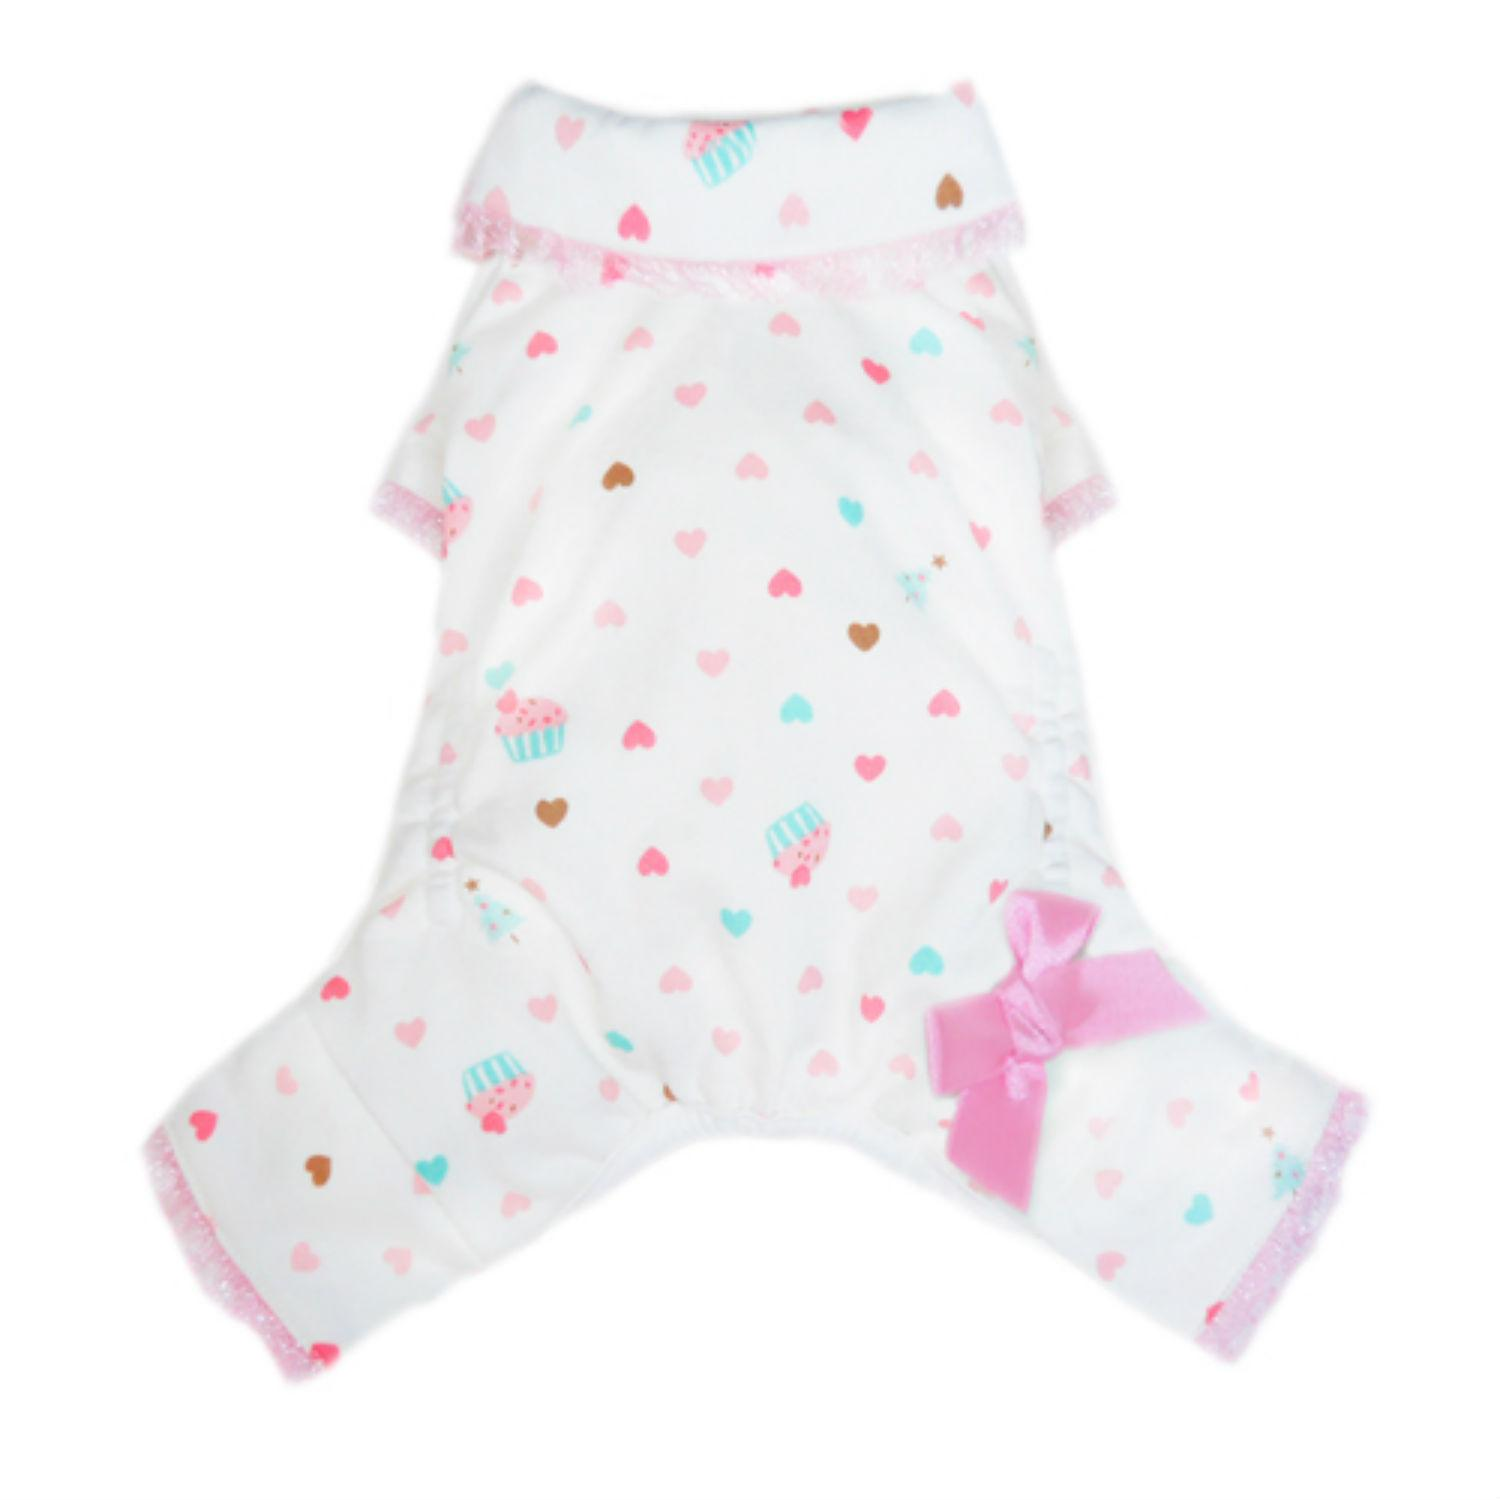 Cupcake Dog Pajamas by Pooch Outfitters